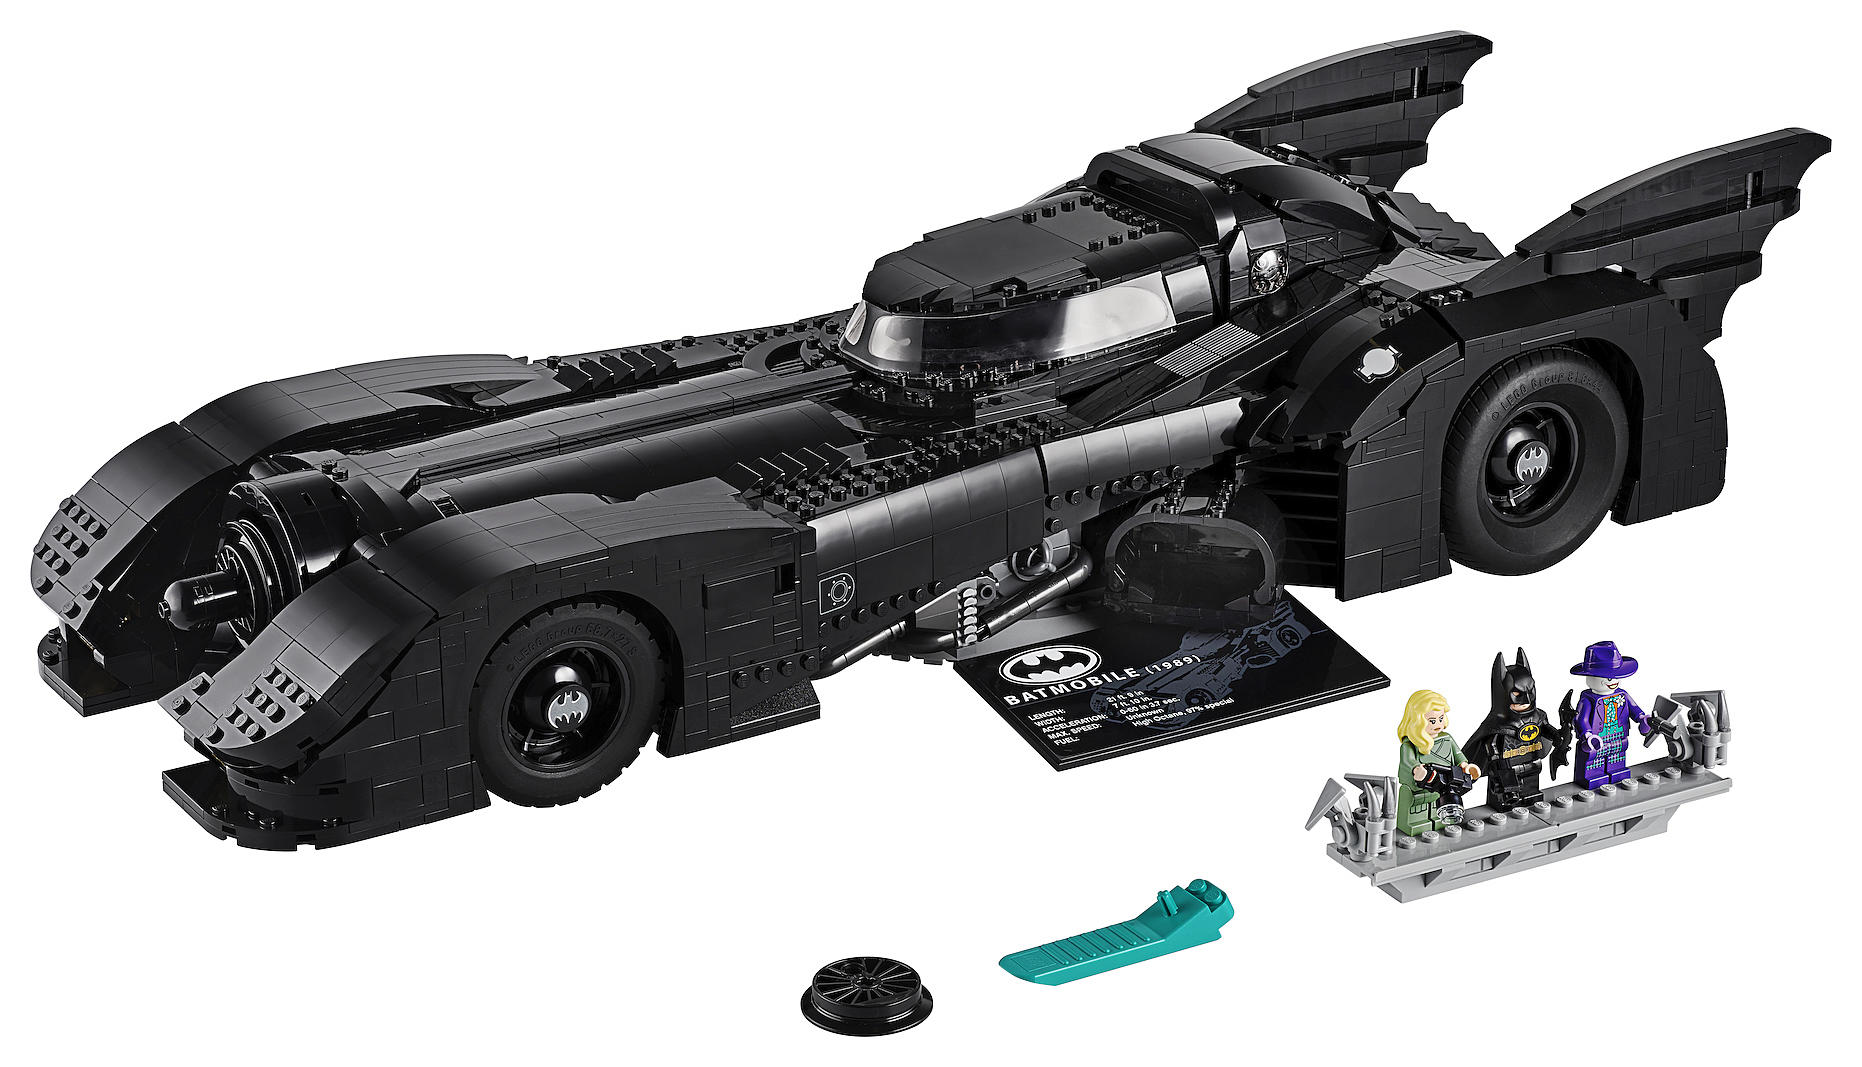 Image result for Here's how to get it, LEGO has made the most popular Tim Burton Batmobile